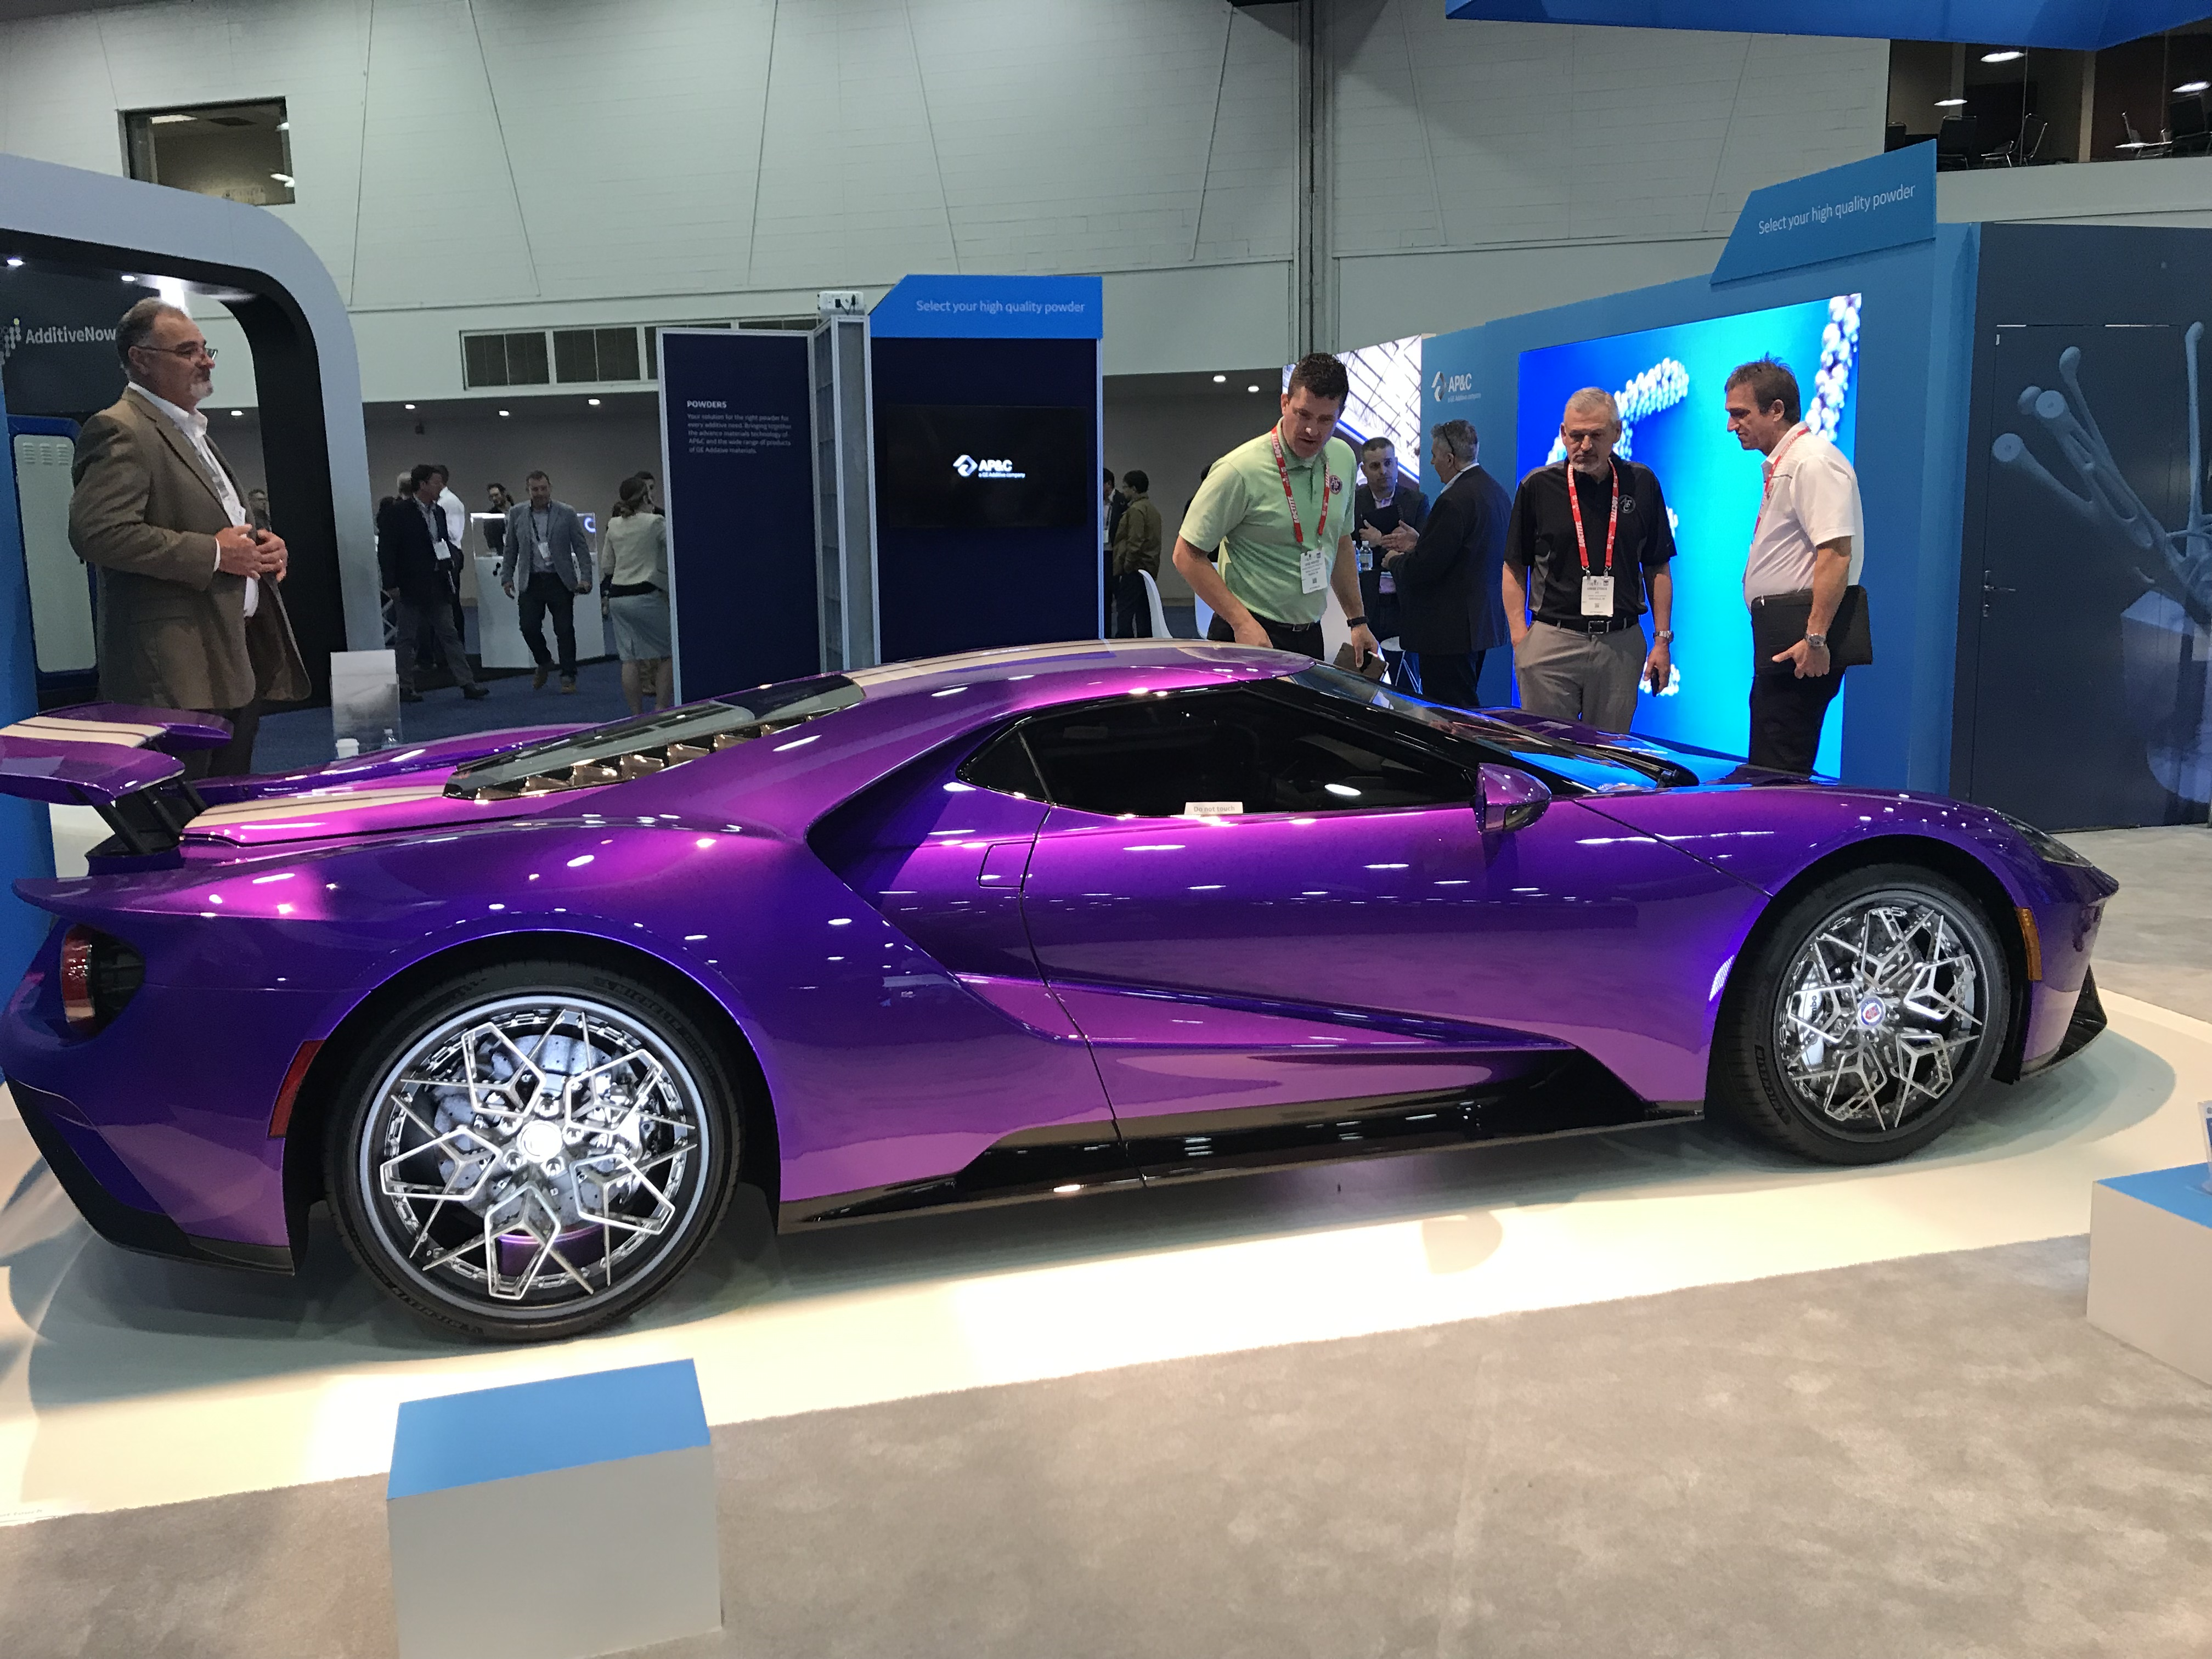 Purple Ford GT fitted with HRE Wheels at 2019 RAPID + TCT. Photo courtesy of Beau Jackson.